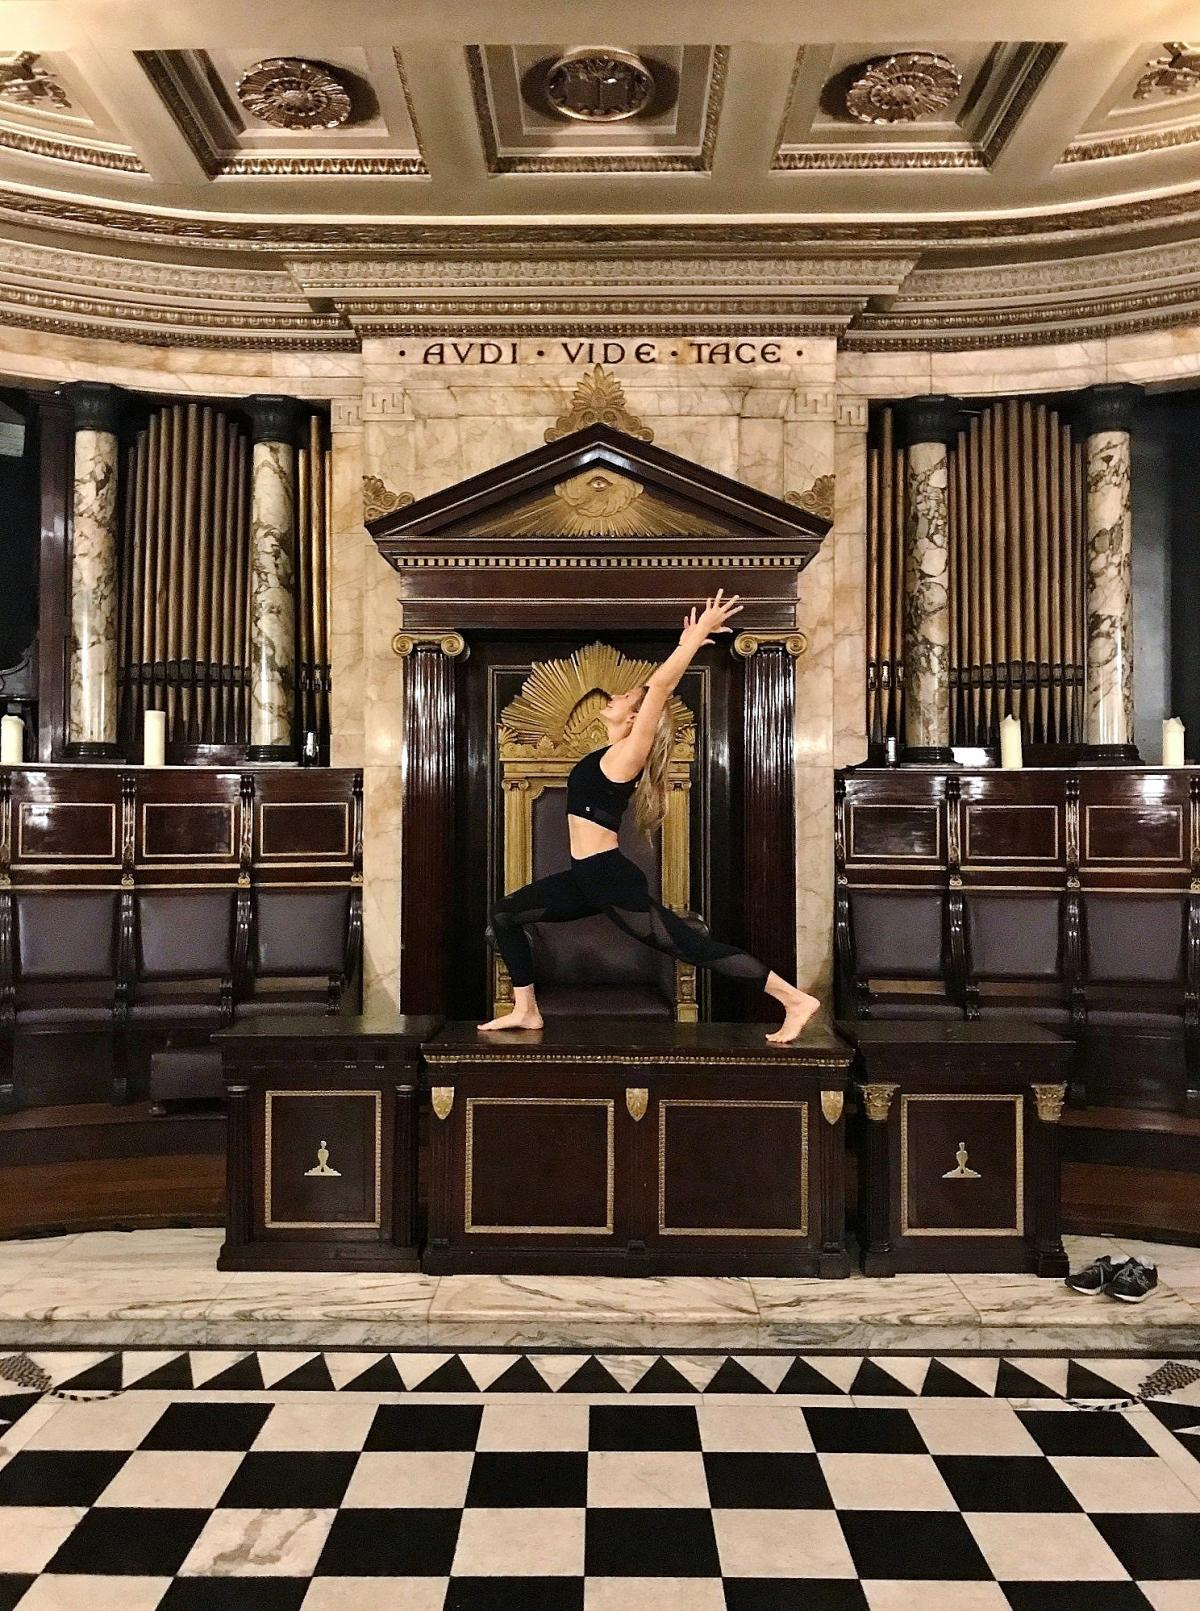 Rare chance to uncover londons hidden masonic temple for brunch and rare chance to uncover londons hidden masonic temple for brunch and yoga m4hsunfo